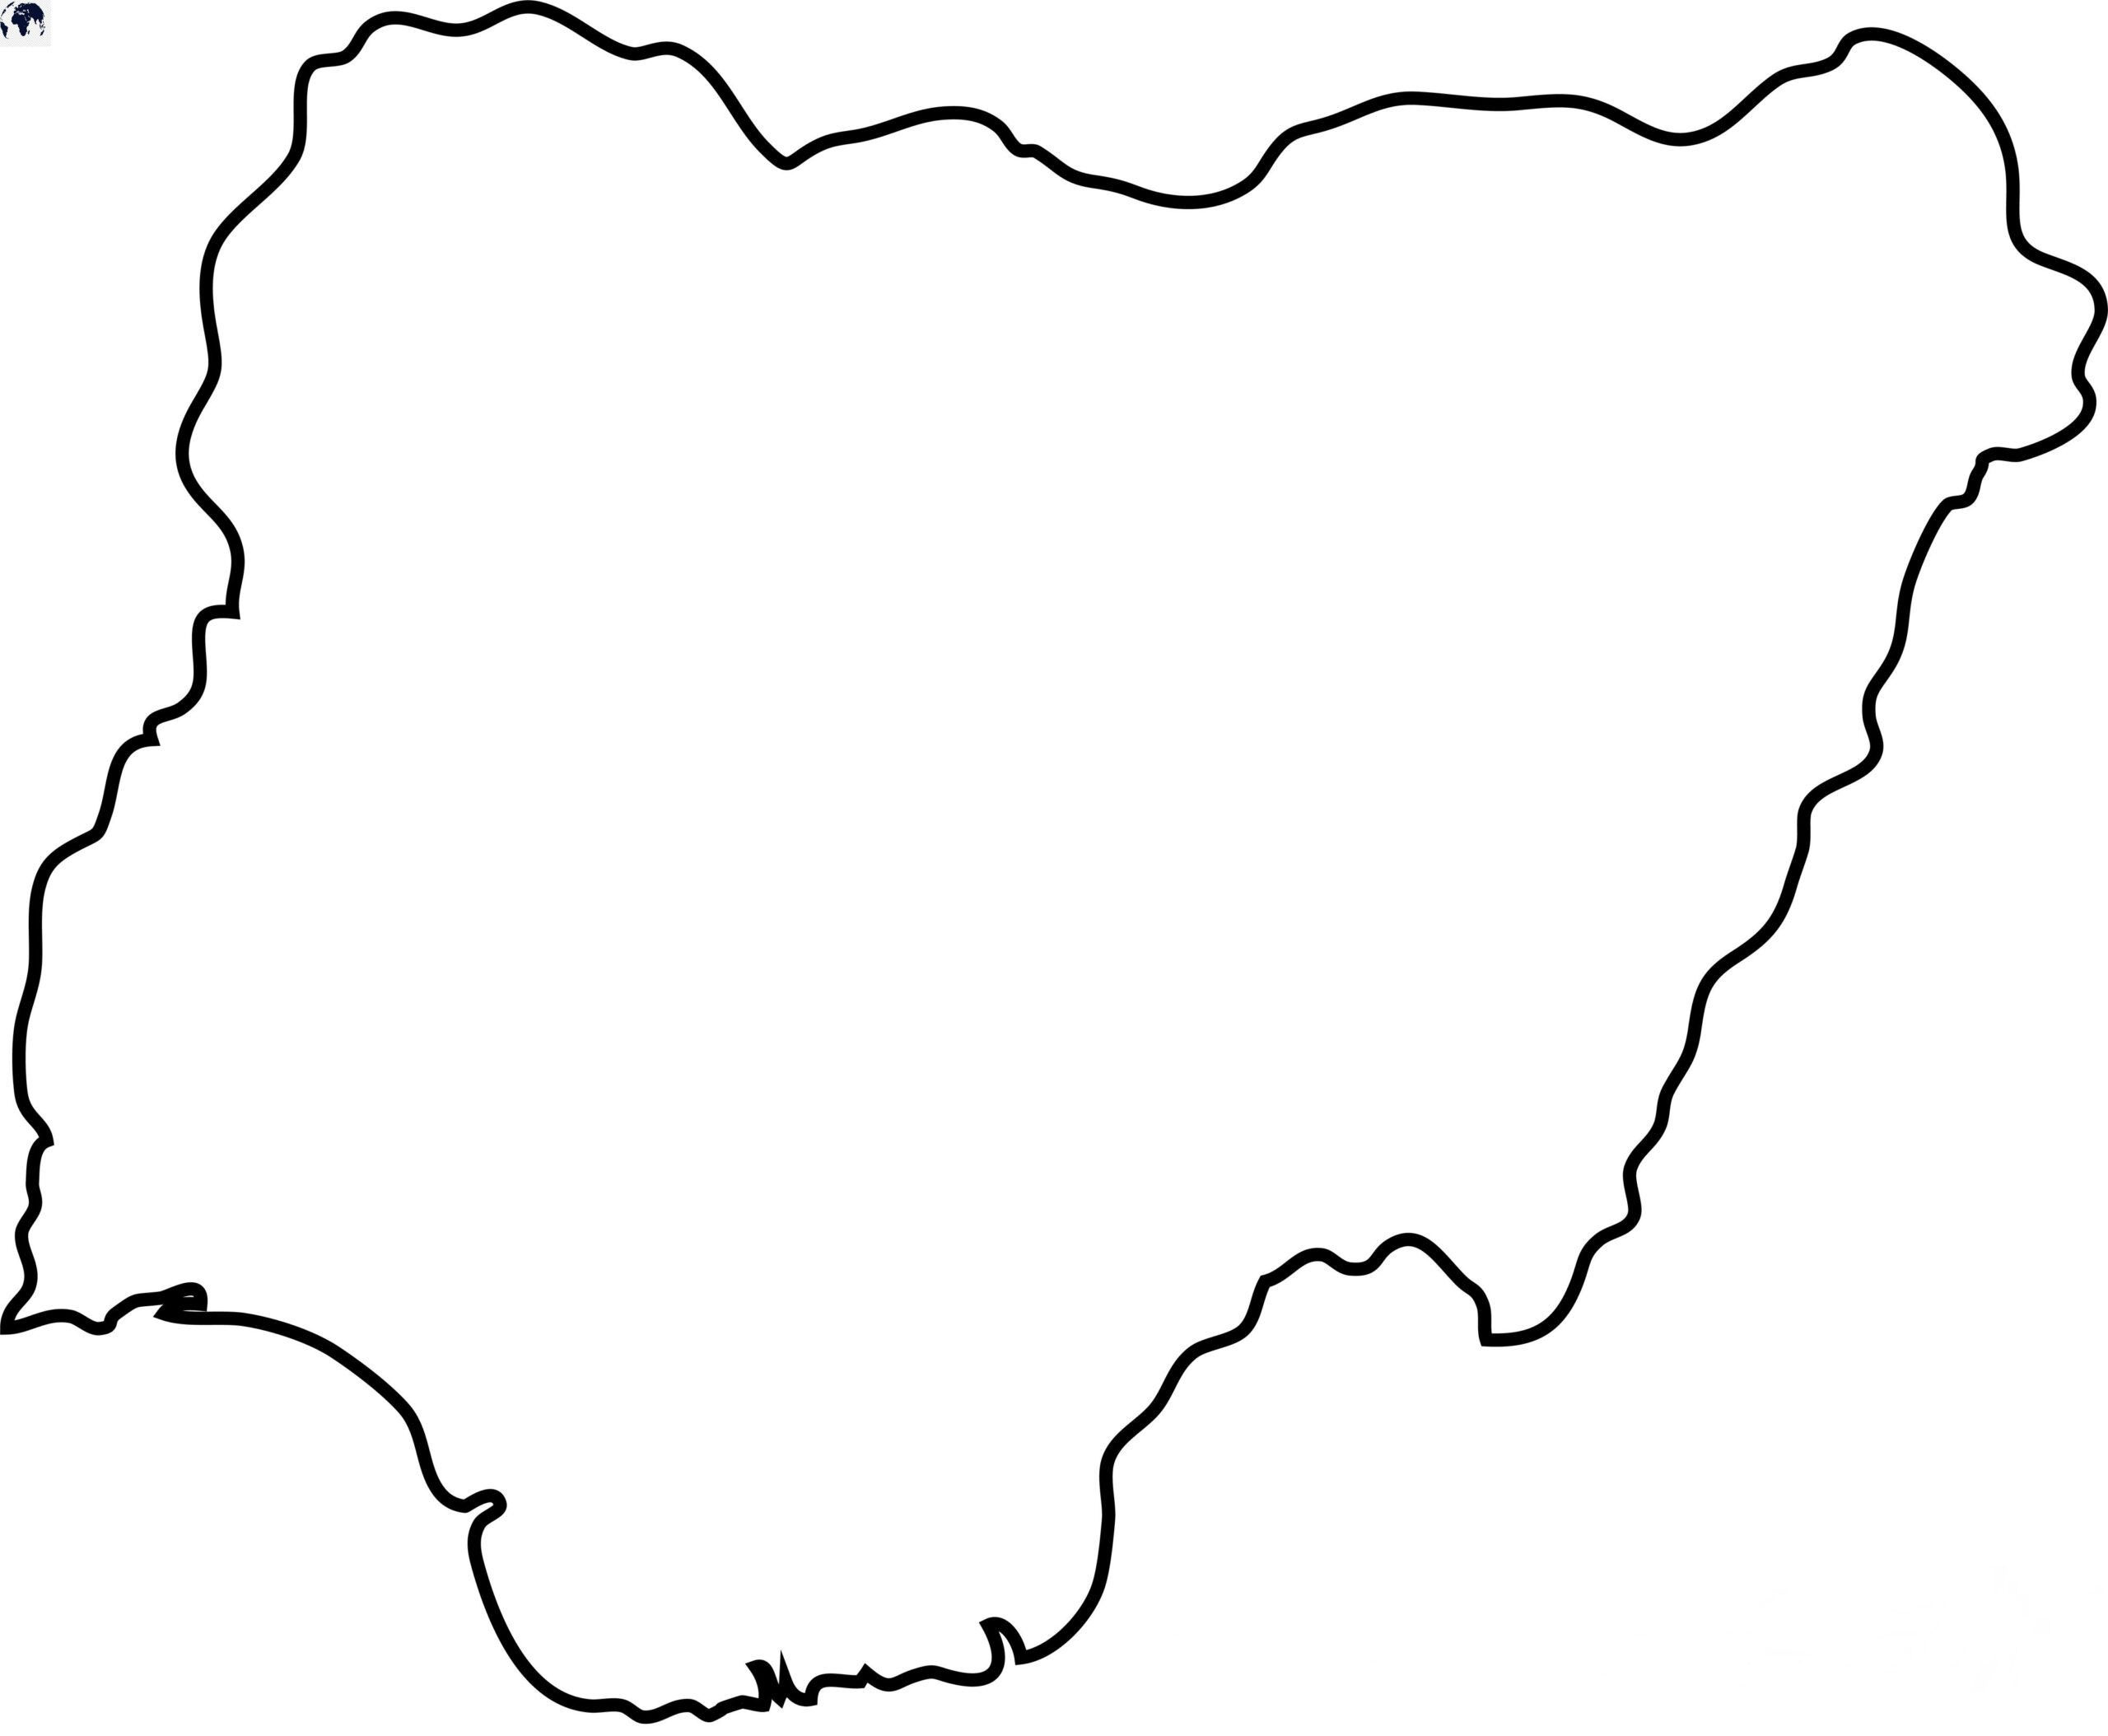 Blank Map of Nigeria - Outline